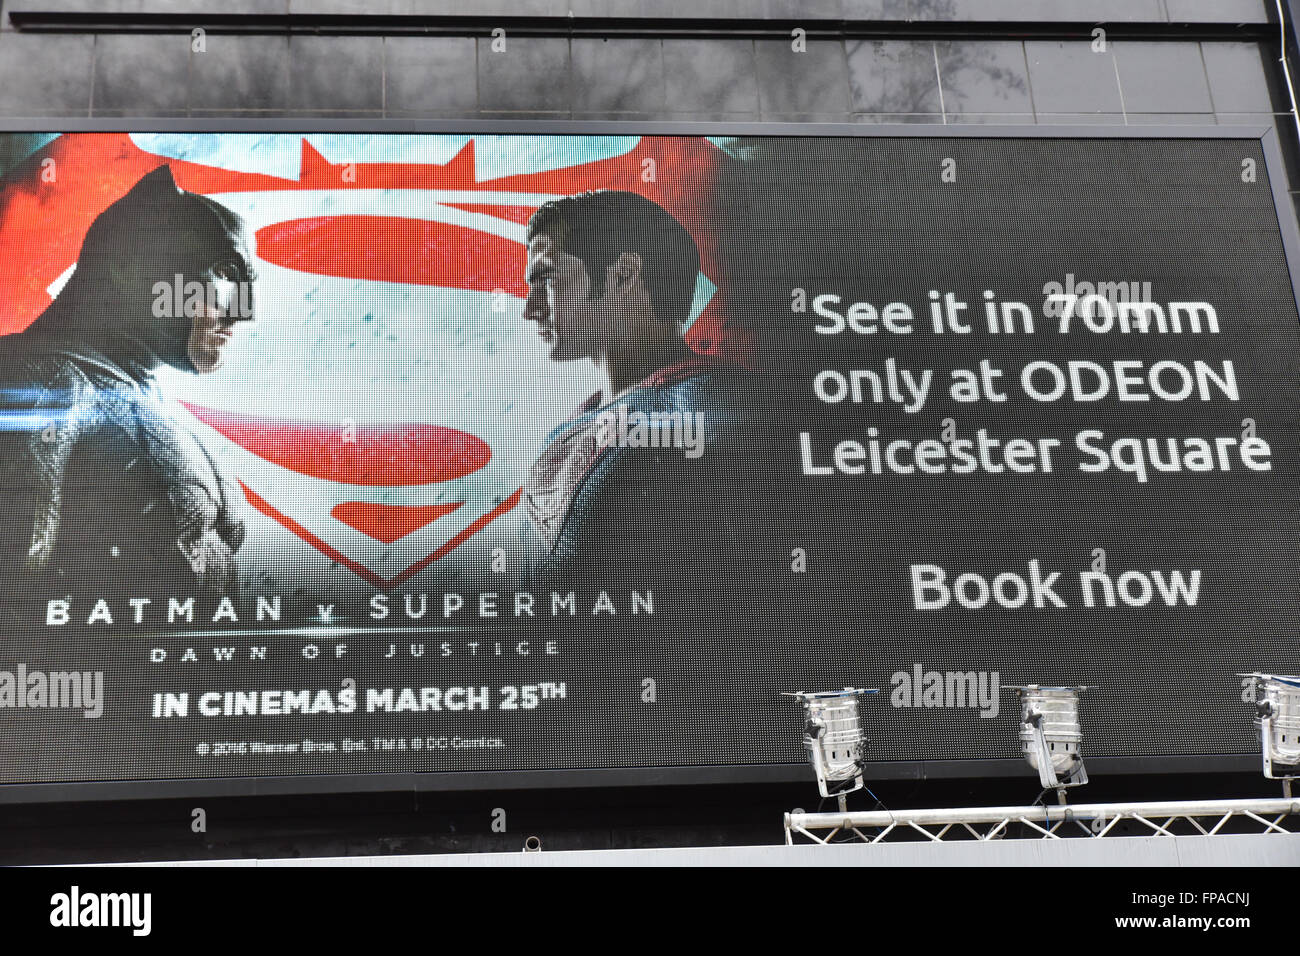 Leicester Square, London, UK. 18th March 2016. Batman v Superman film which is released next Friday is to be shown - Stock Image